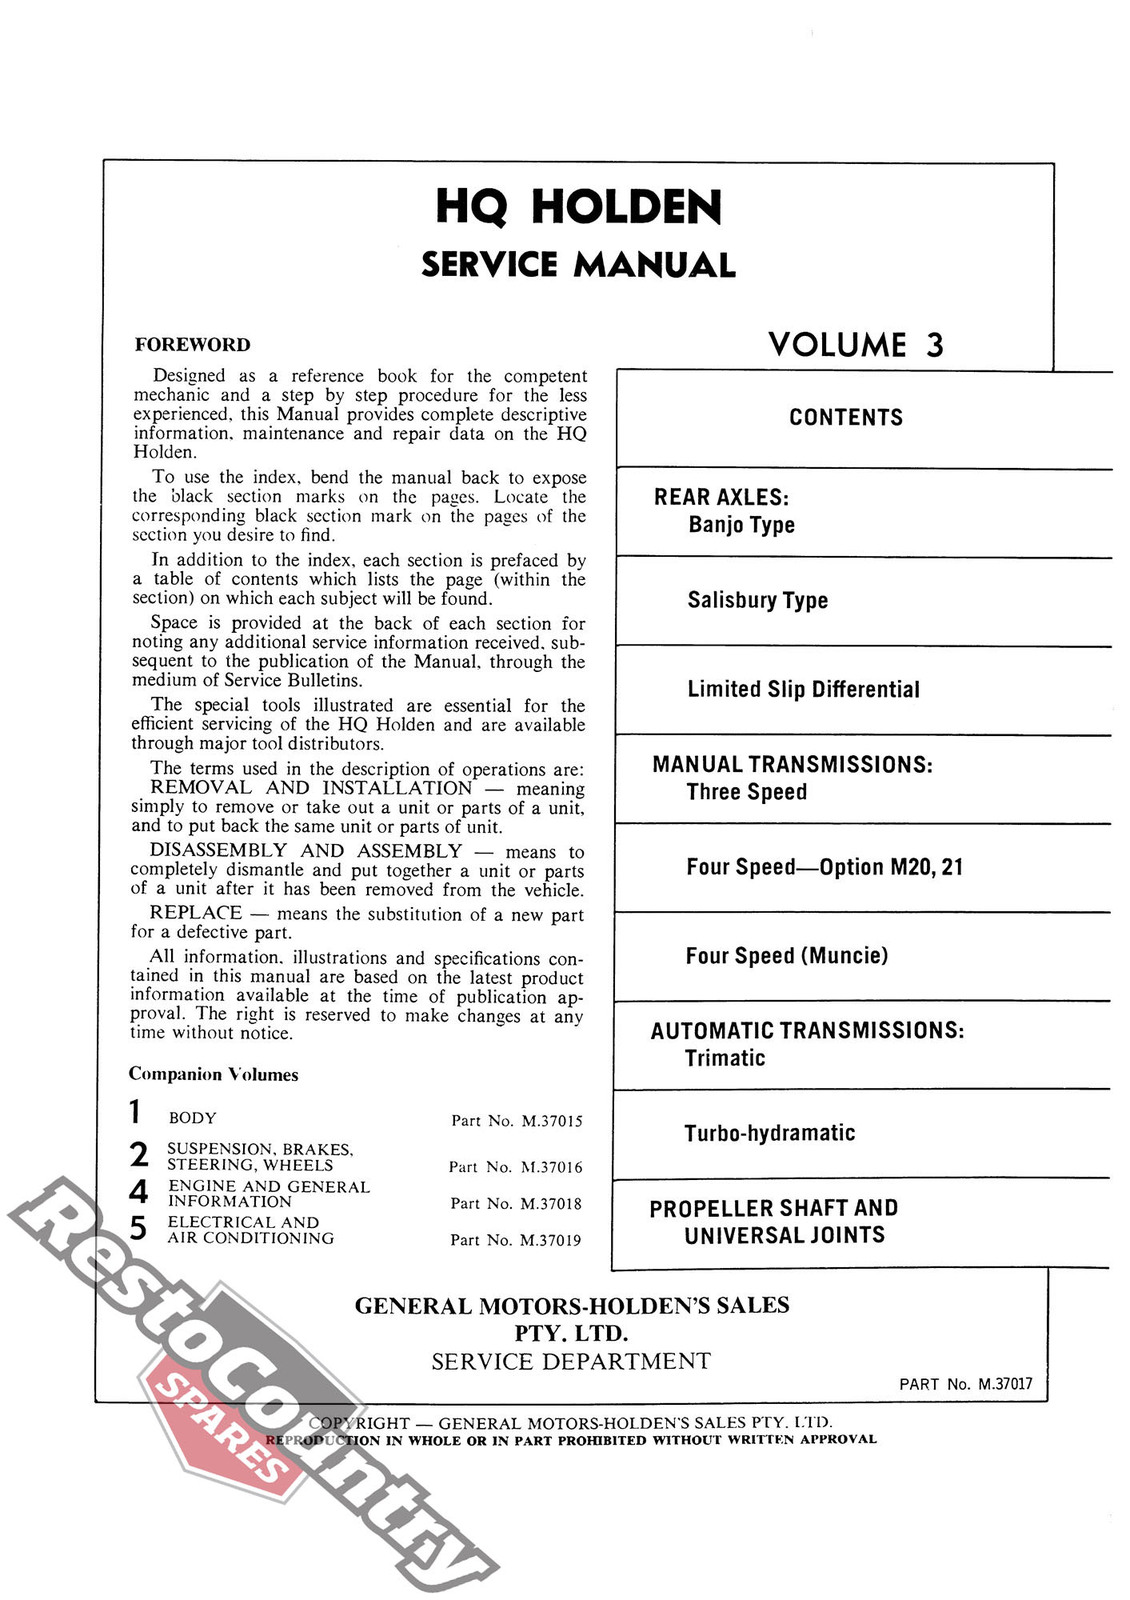 Holden GMH Factory HQ Vol 1 2 3 4 5 Service Manual NEW 5 Volume Set workshop  book